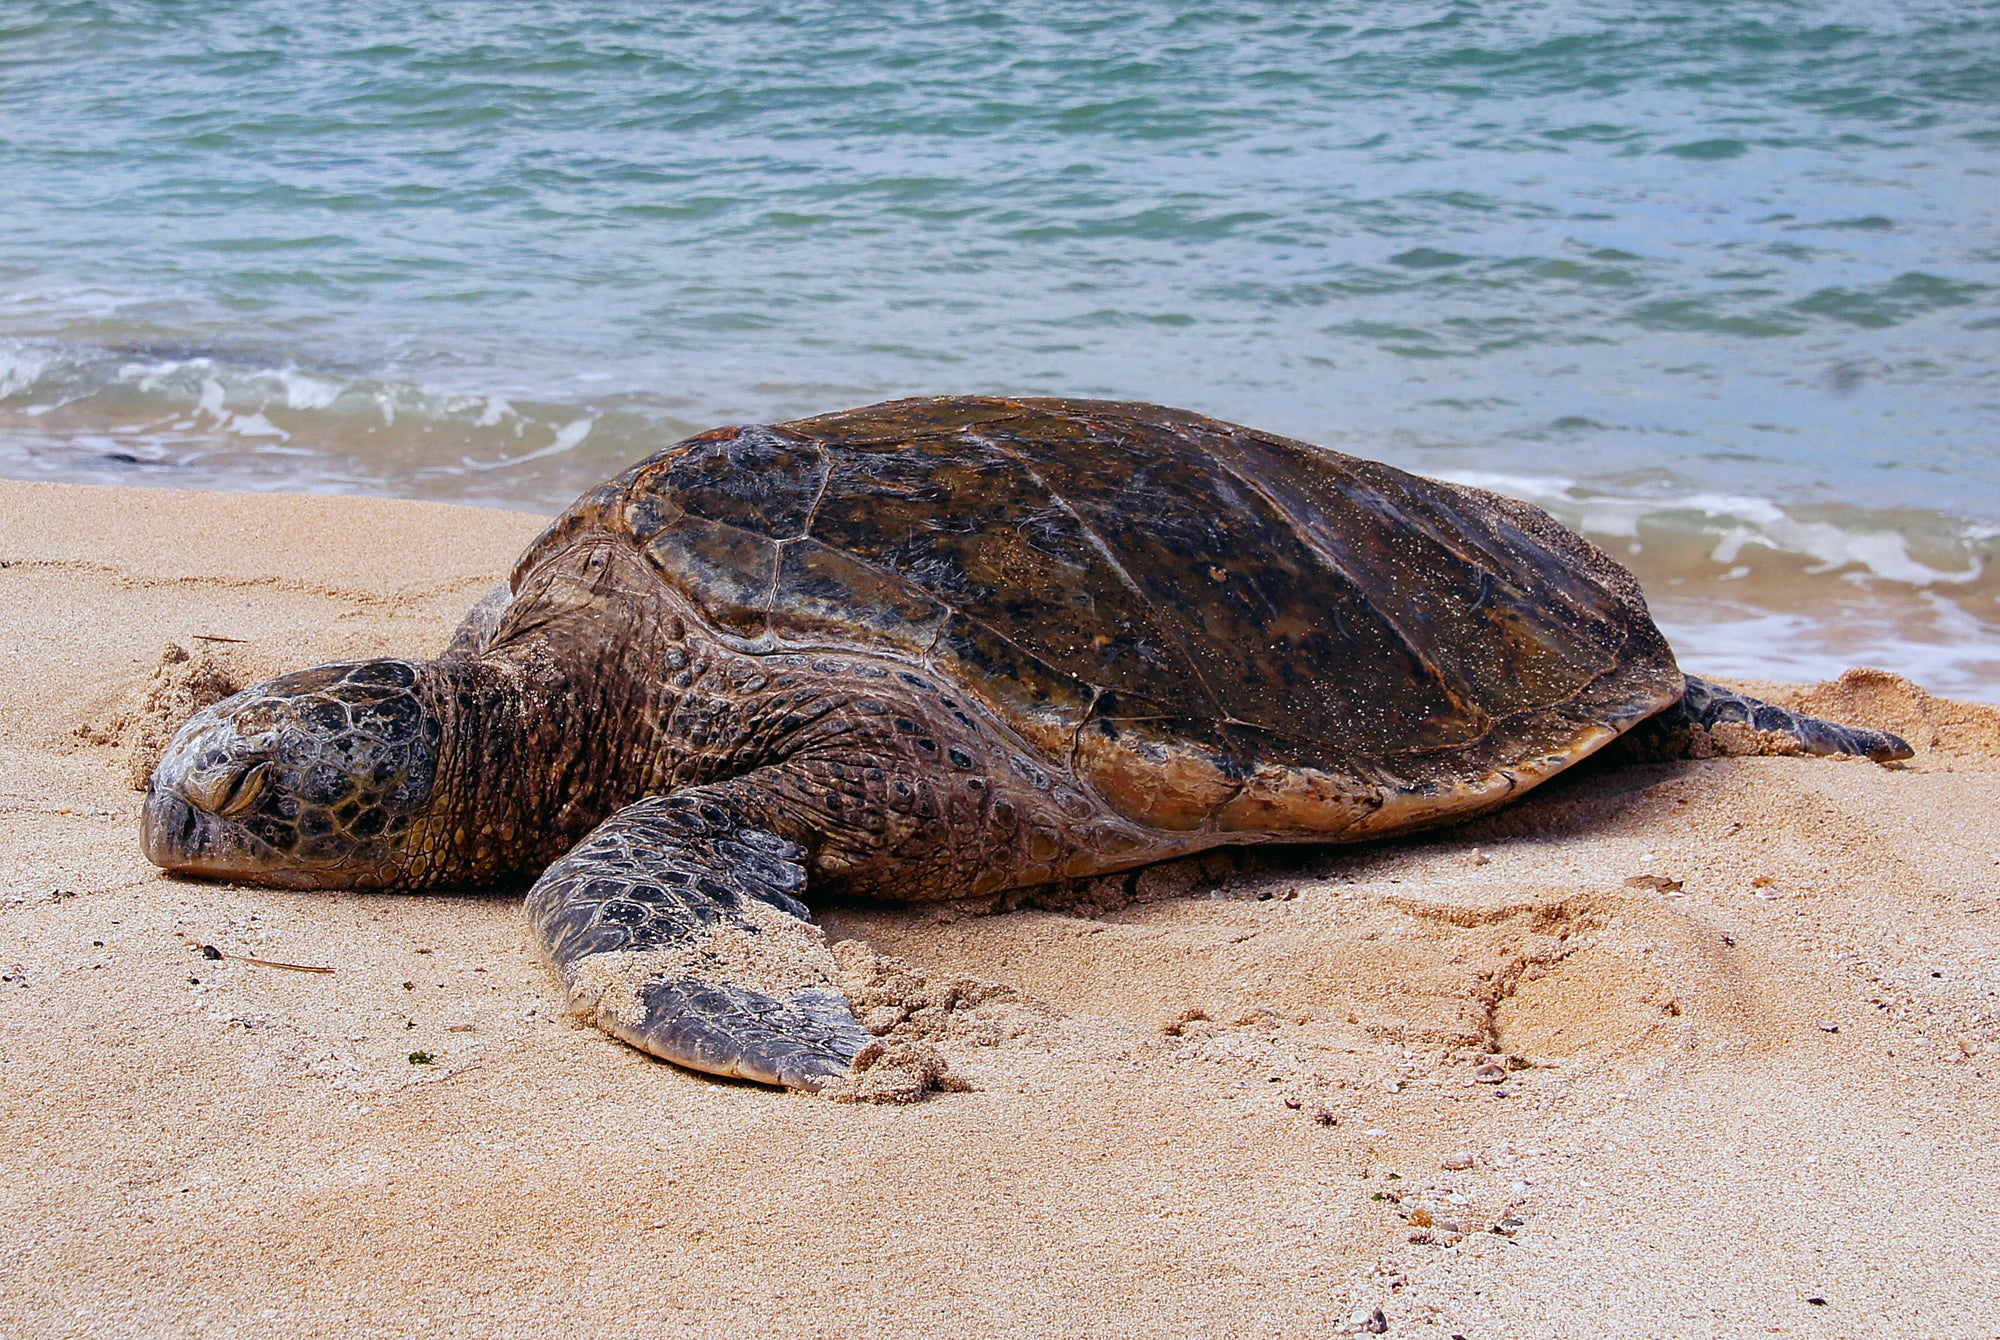 Do Sea Turtles Move Fast on Land?